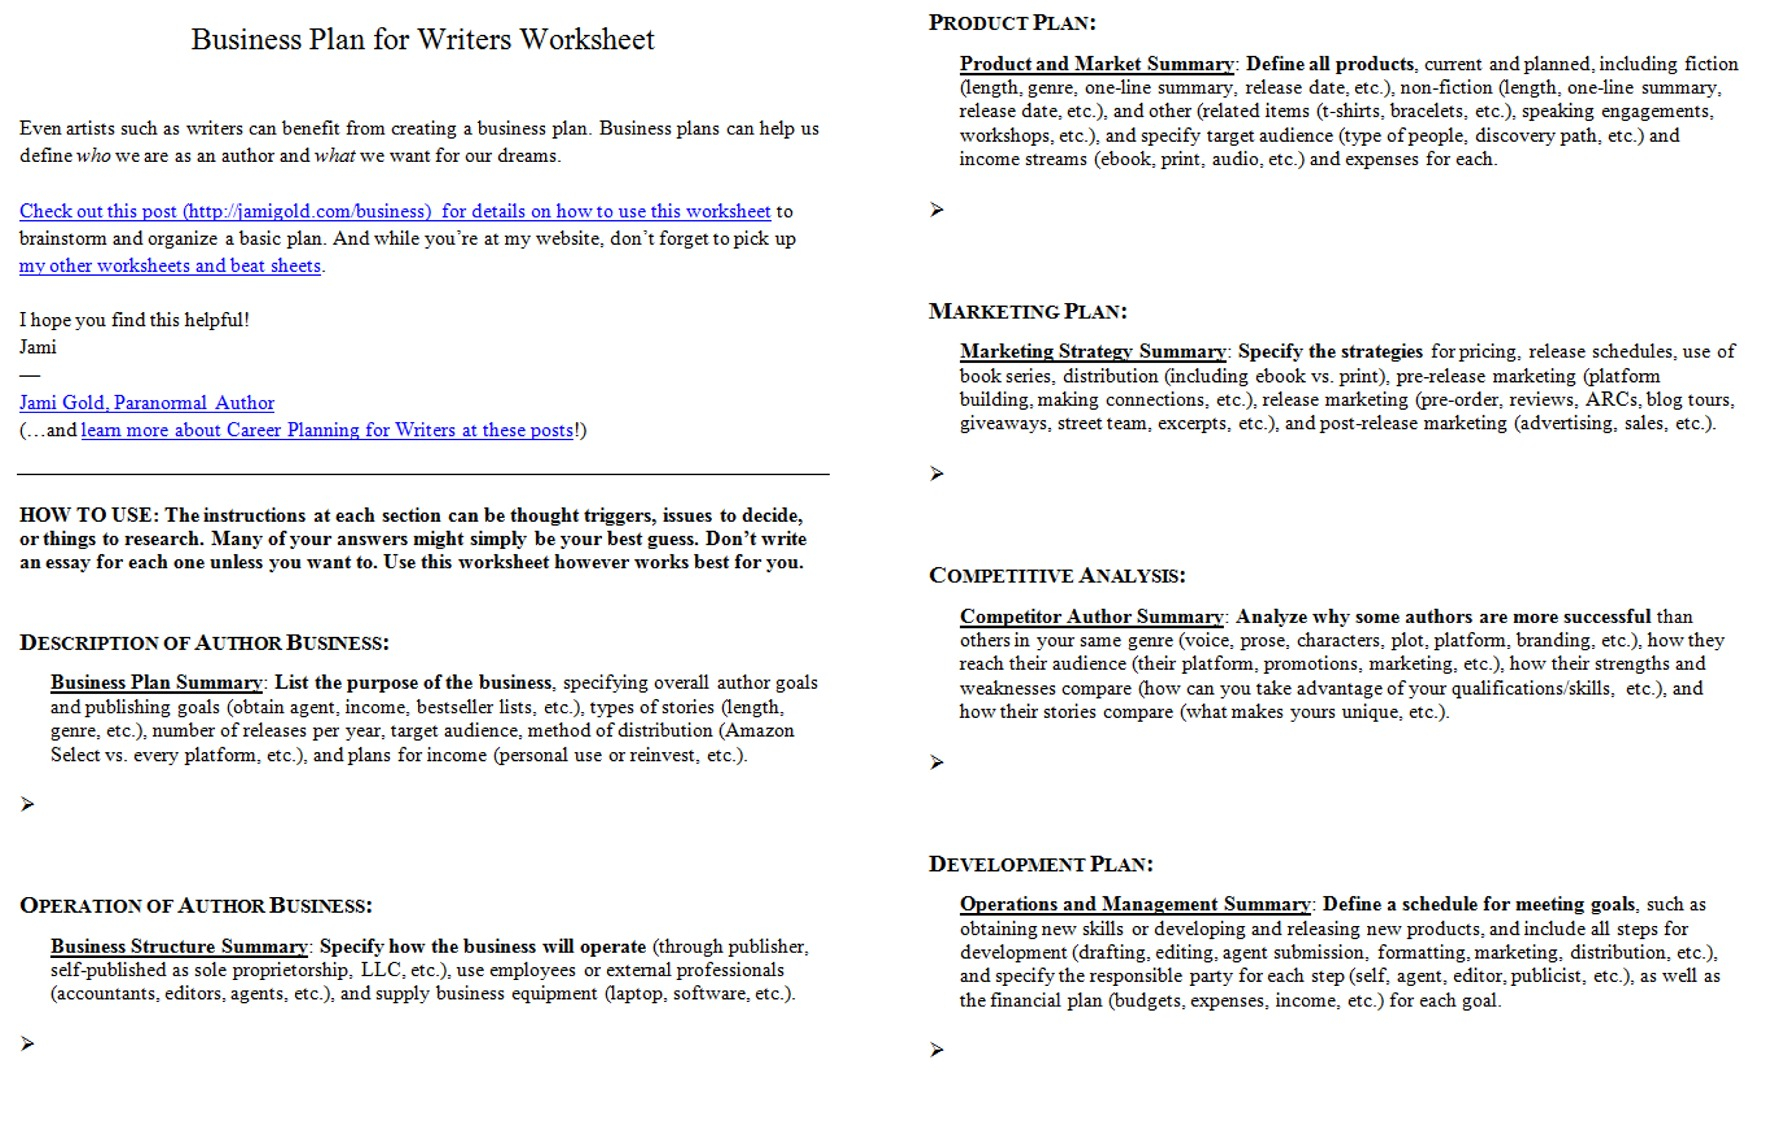 Weirdmailus  Winning Worksheets For Writers  Jami Gold Paranormal Author With Excellent Screen Shot Of Both Pages Of The Business Plan For Writers Worksheet With Amazing Verb Worksheets Th Grade Also Fractions Practice Worksheets In Addition Exponents And Division Worksheet And Free Reading Worksheets For St Grade As Well As Visual Tracking Worksheets Additionally Double Digit Addition Worksheet From Jamigoldcom With Weirdmailus  Excellent Worksheets For Writers  Jami Gold Paranormal Author With Amazing Screen Shot Of Both Pages Of The Business Plan For Writers Worksheet And Winning Verb Worksheets Th Grade Also Fractions Practice Worksheets In Addition Exponents And Division Worksheet From Jamigoldcom